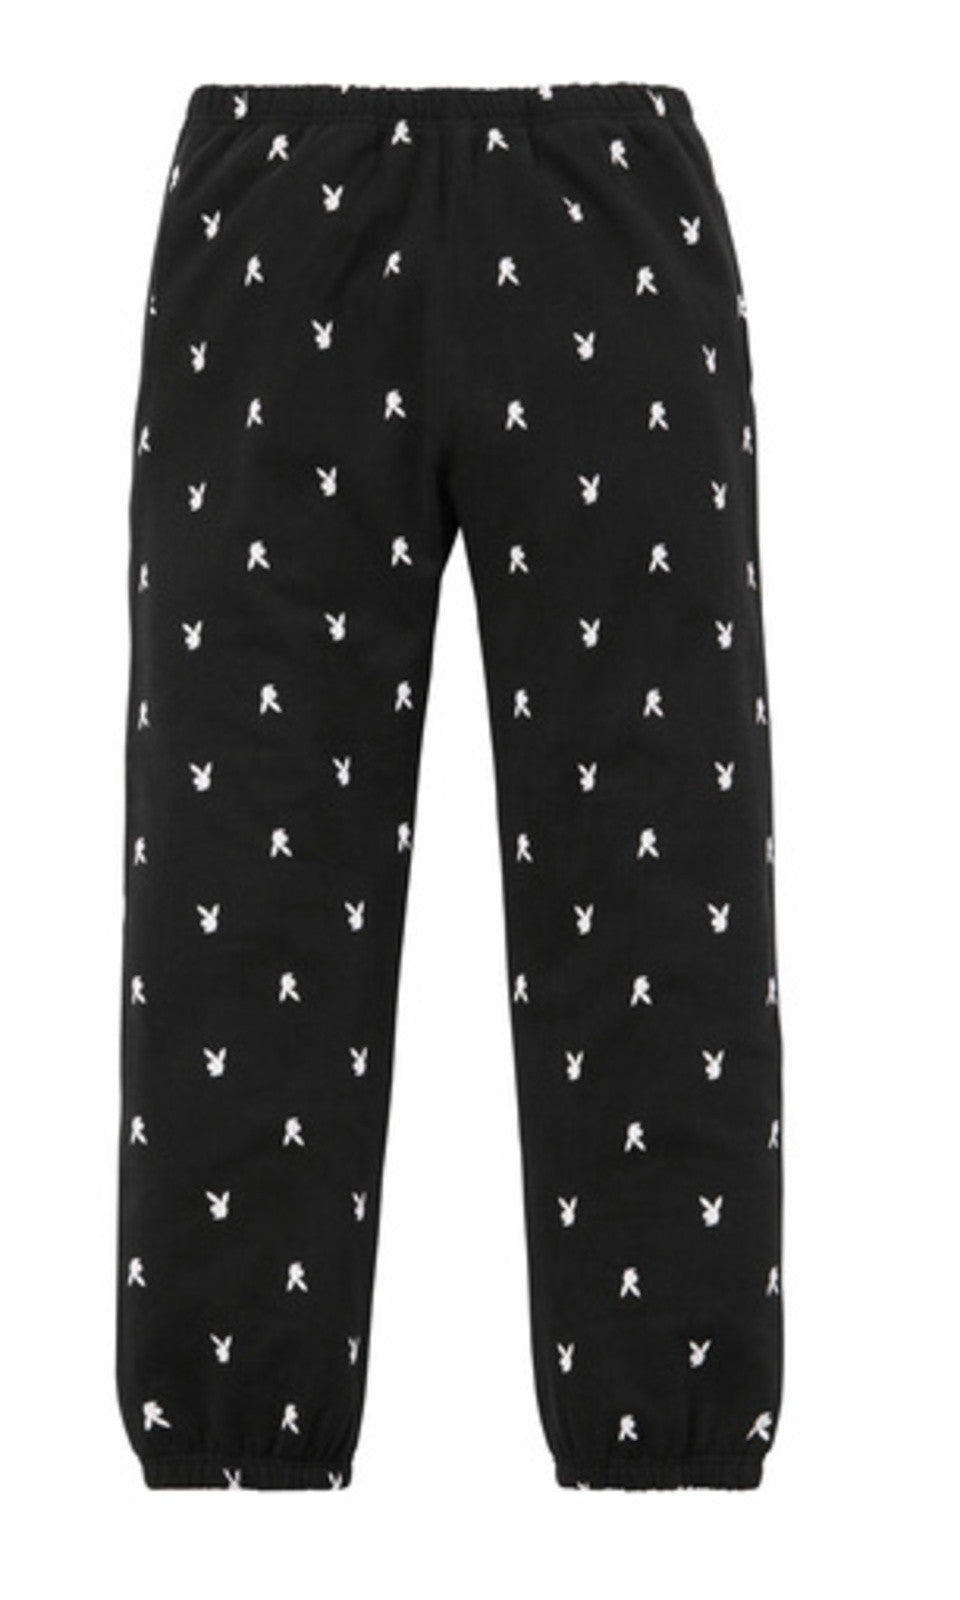 Supreme / Playboy Sweatpants - Medium